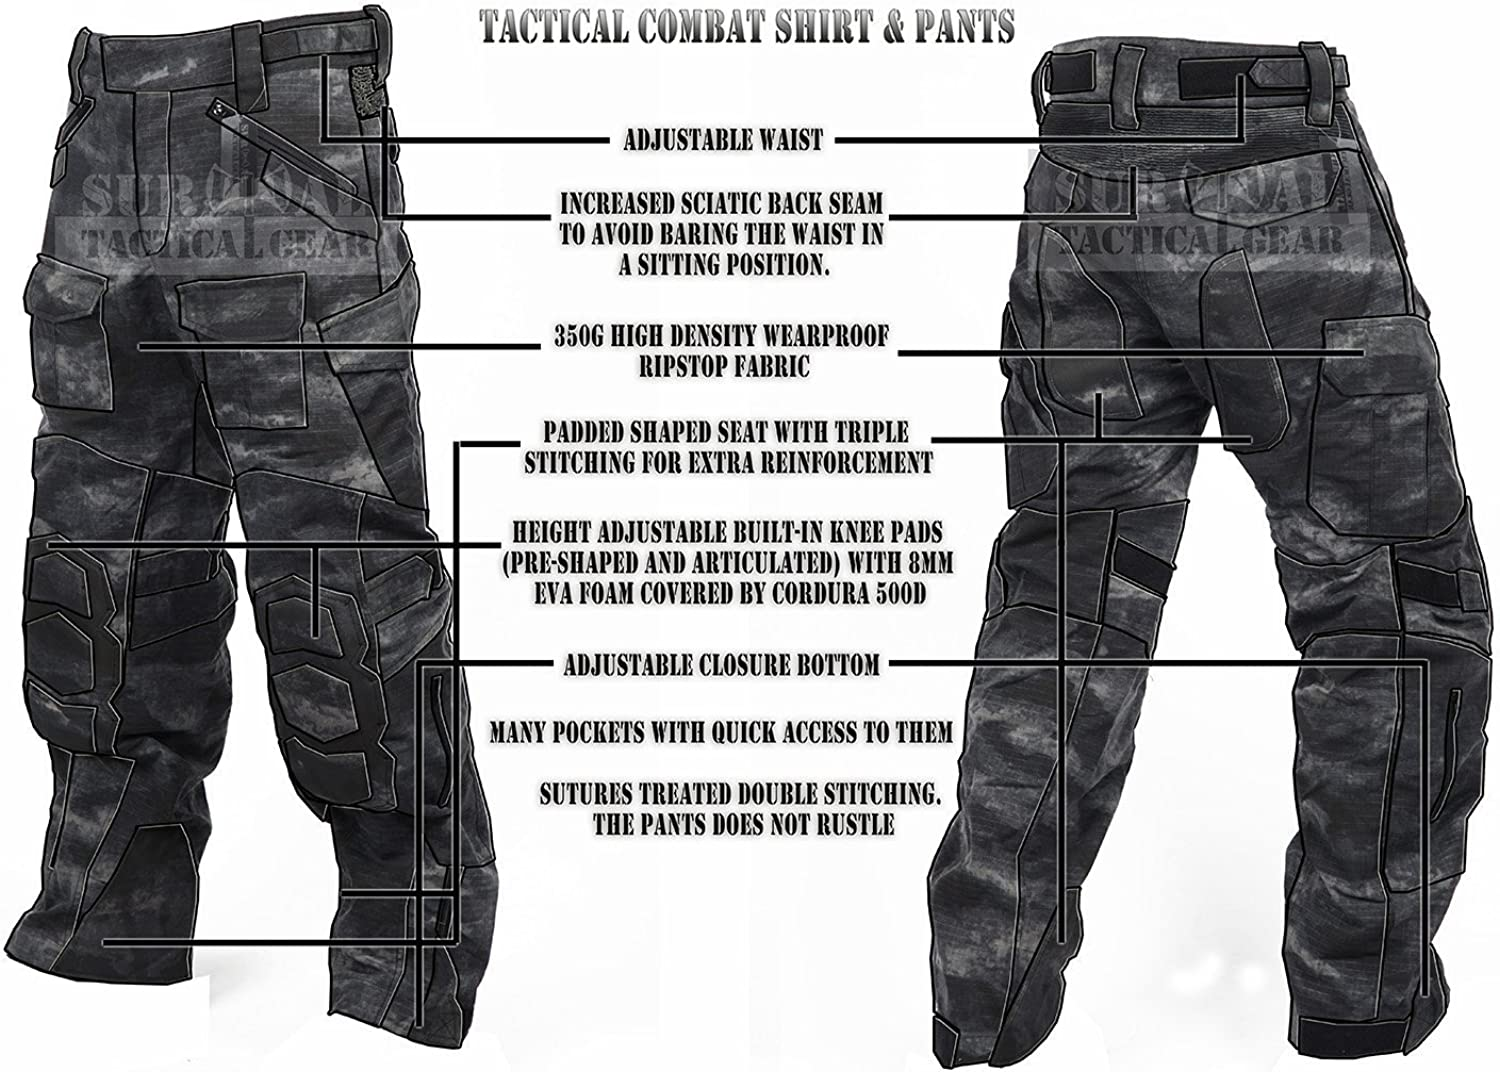 ZAPT Tactical Ripstop Combat Pants with Knee Protector Airsoft Paintball Military Camo Uniform Army Camouflage Trousers